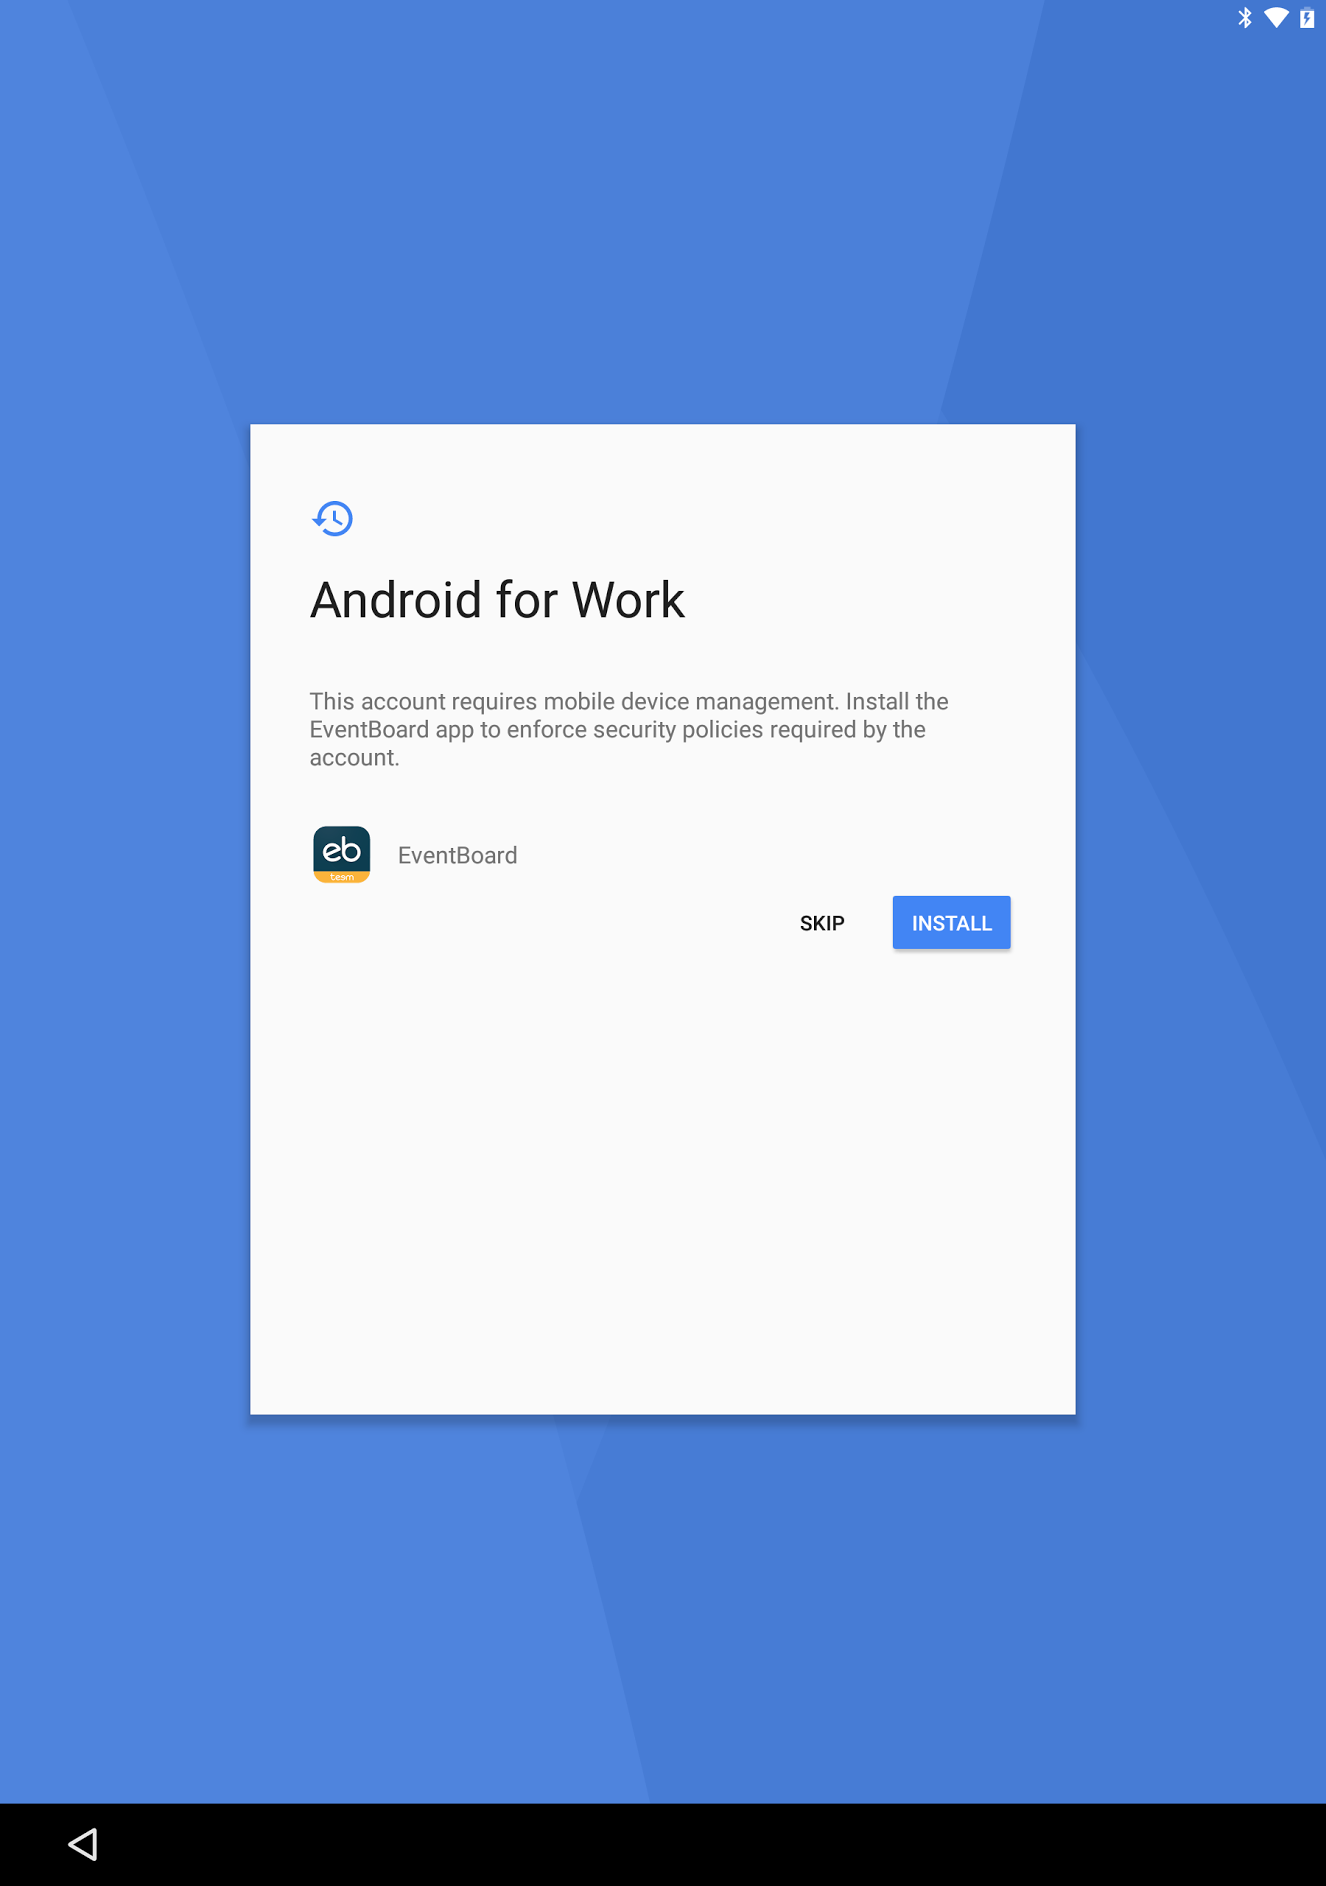 Androind for Work Account Install Screen